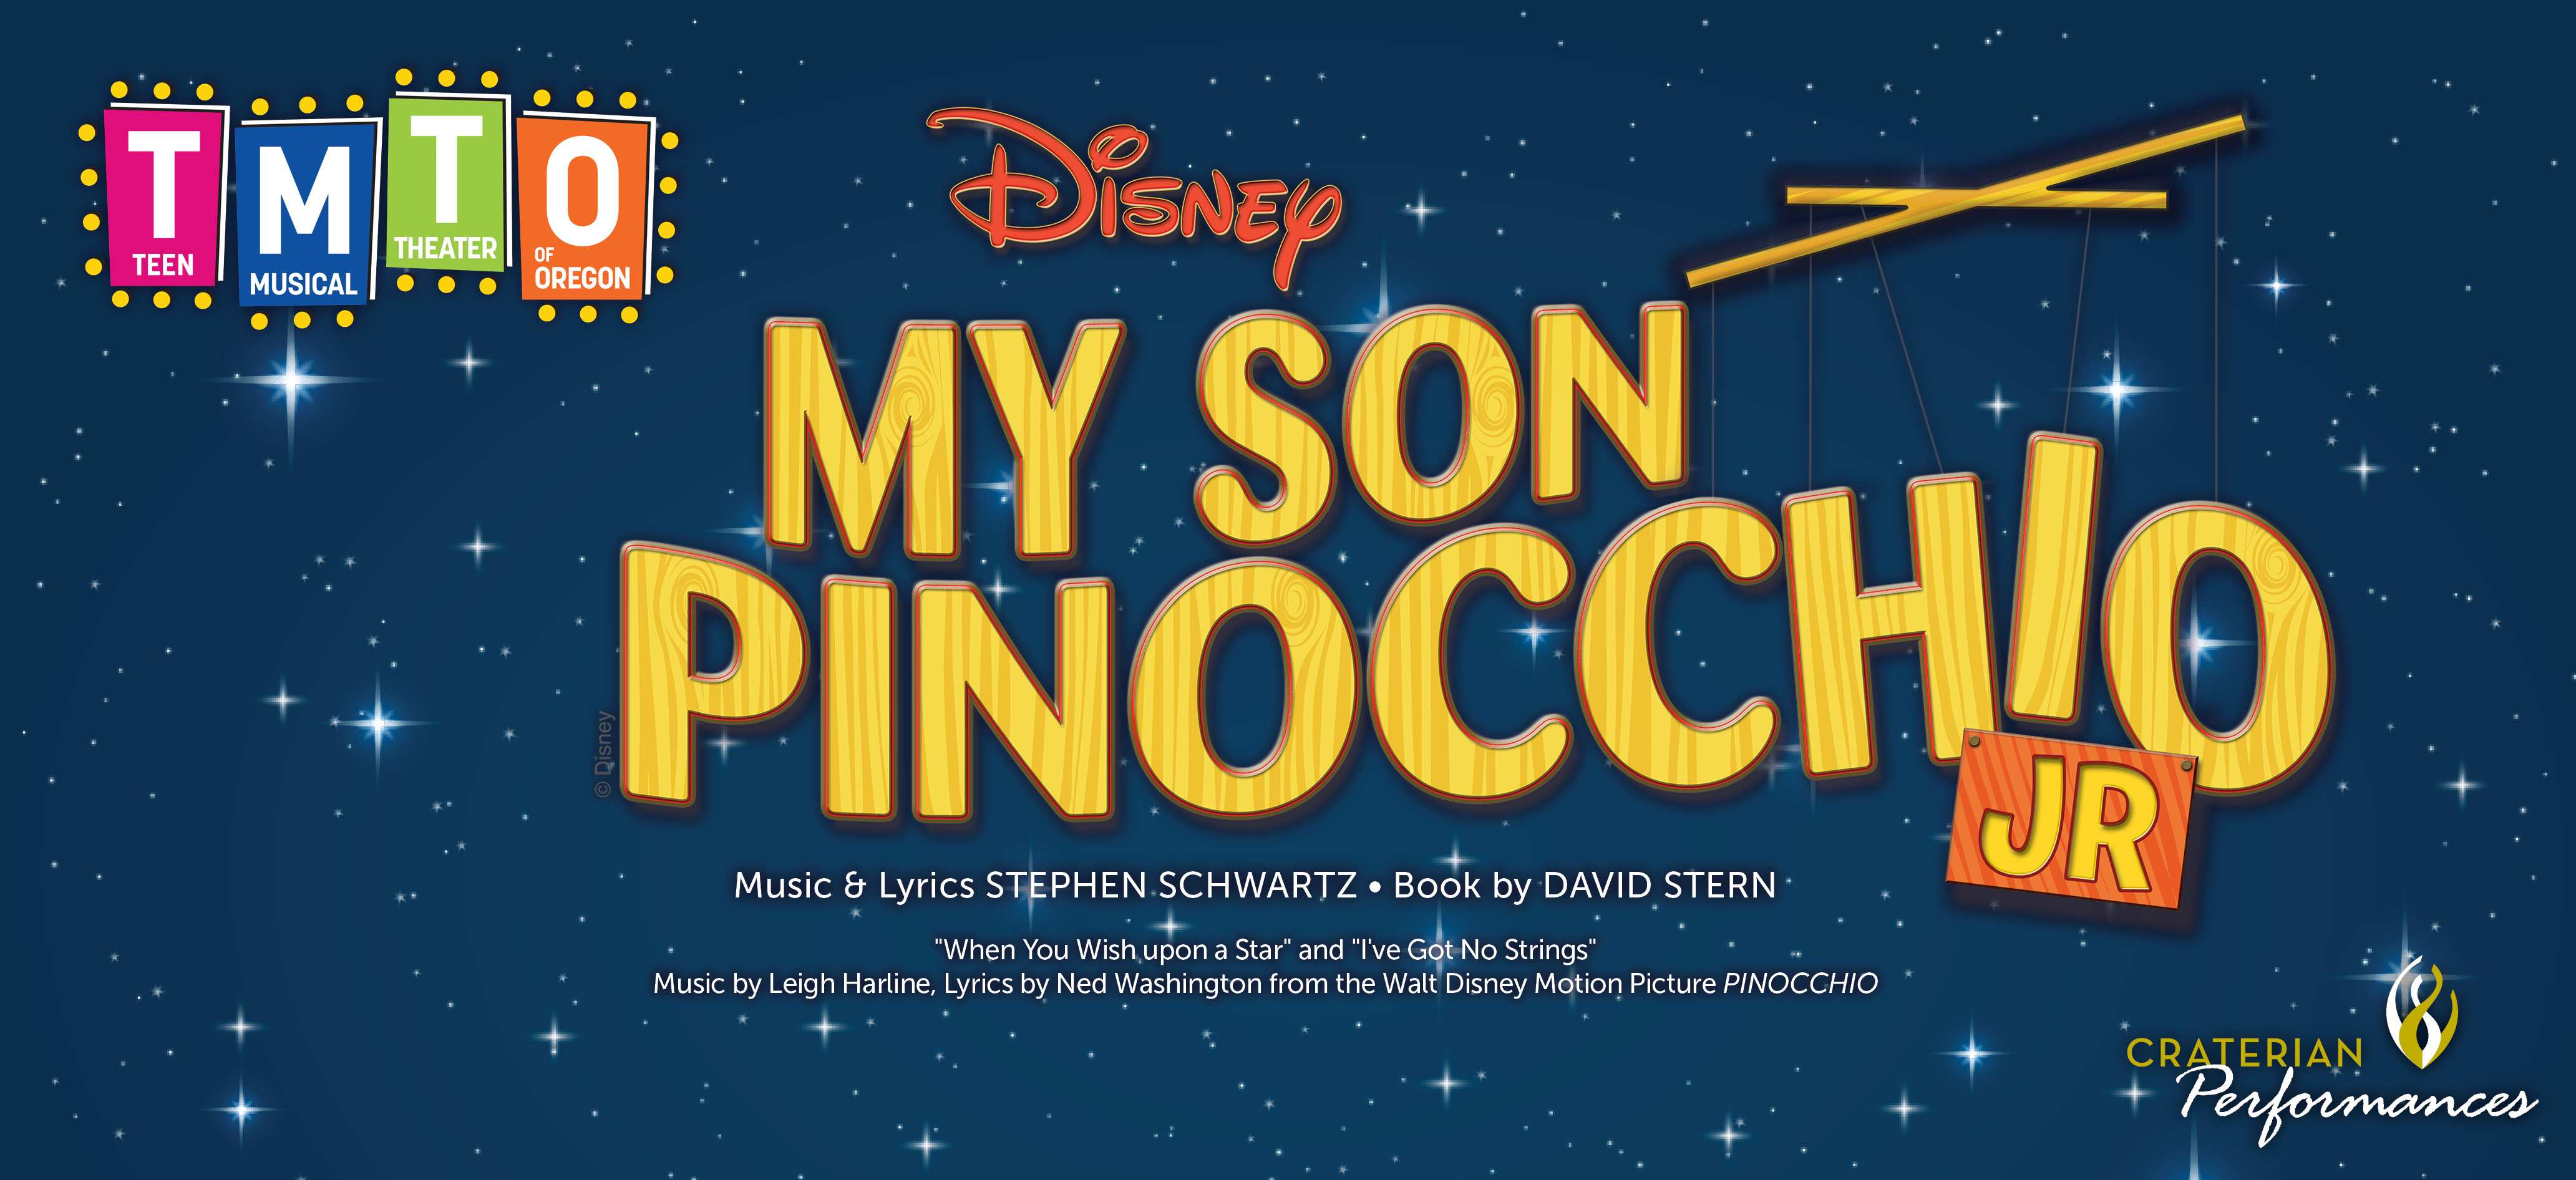 TMTO : Disney's My Son Pinocchio JR